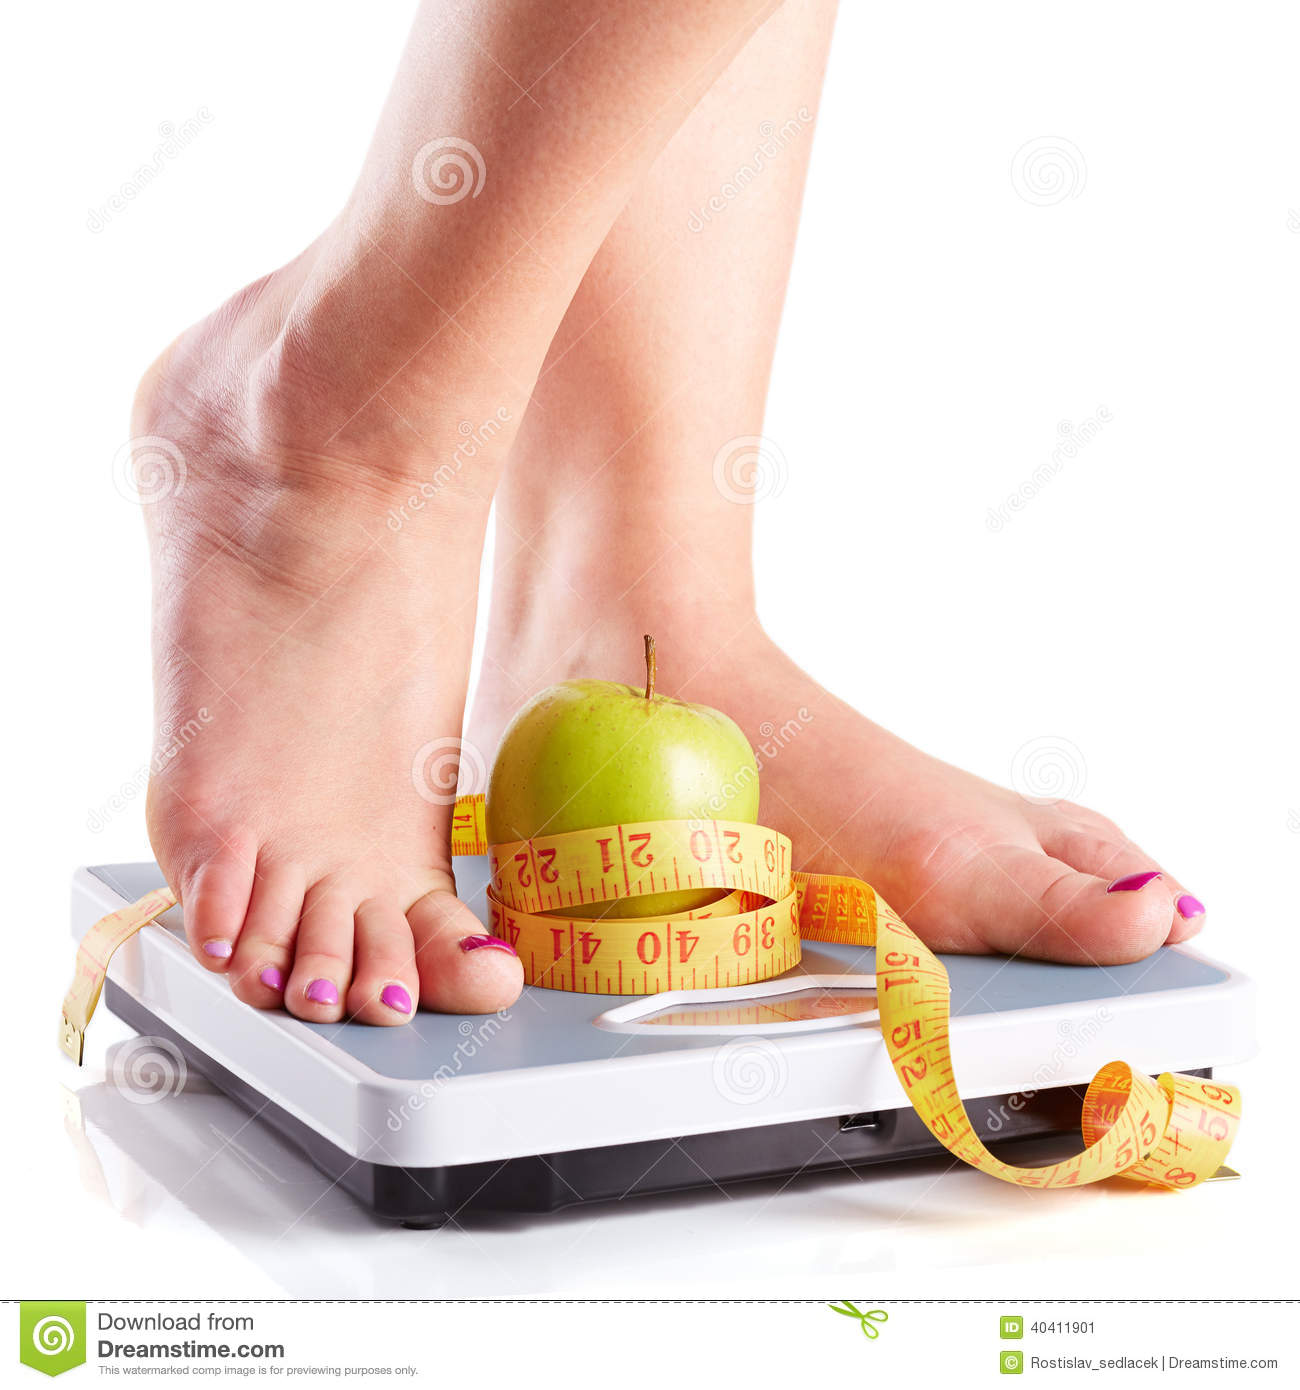 A pair of female feet standing on a bathroom scale with green ap